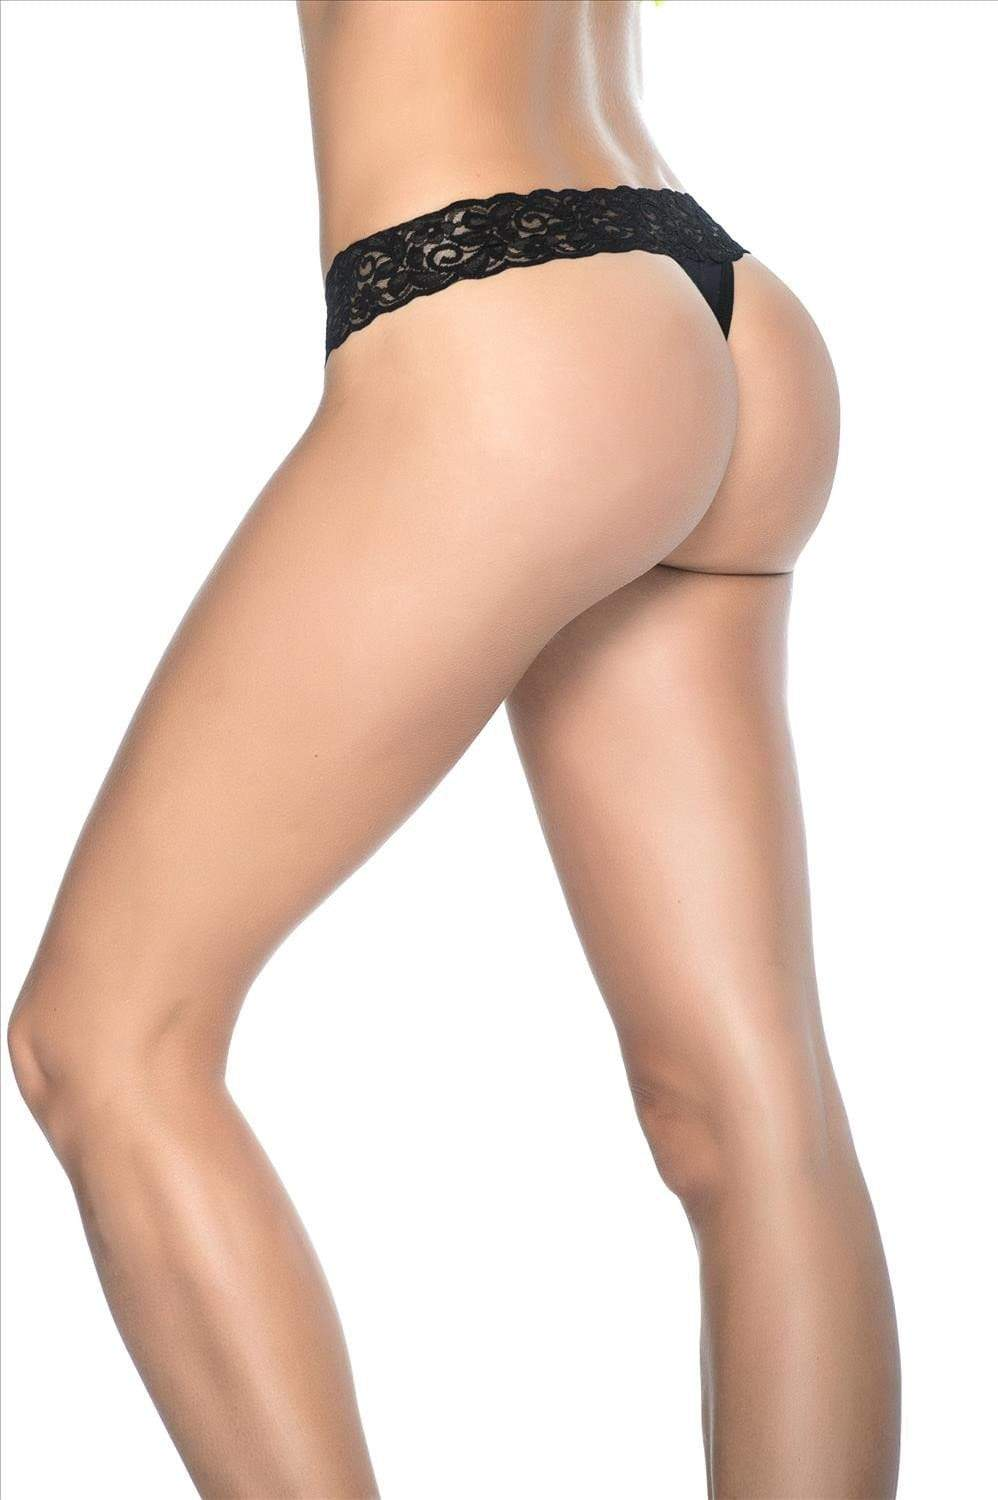 espiral Sexy Black Lace Thong Panty Underwear Lingerie  (Many Colors Available) Sexy Black Lace Thong Panty Underwear Lingerie  (Many Colors Available) Apparel & Accessories > Clothing > Underwear & Socks > Underwear